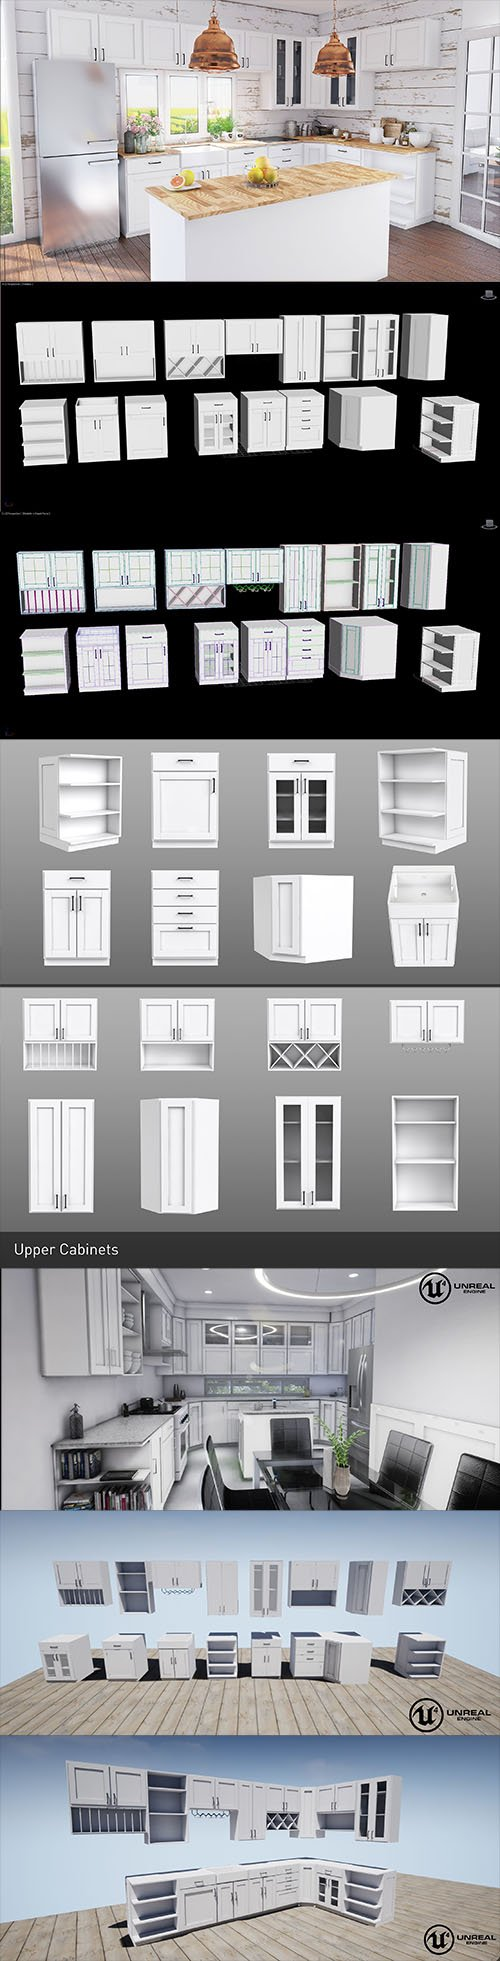 Vray and UE4 Shake Style Cabinets - 16 modular models Low-poly 3D model